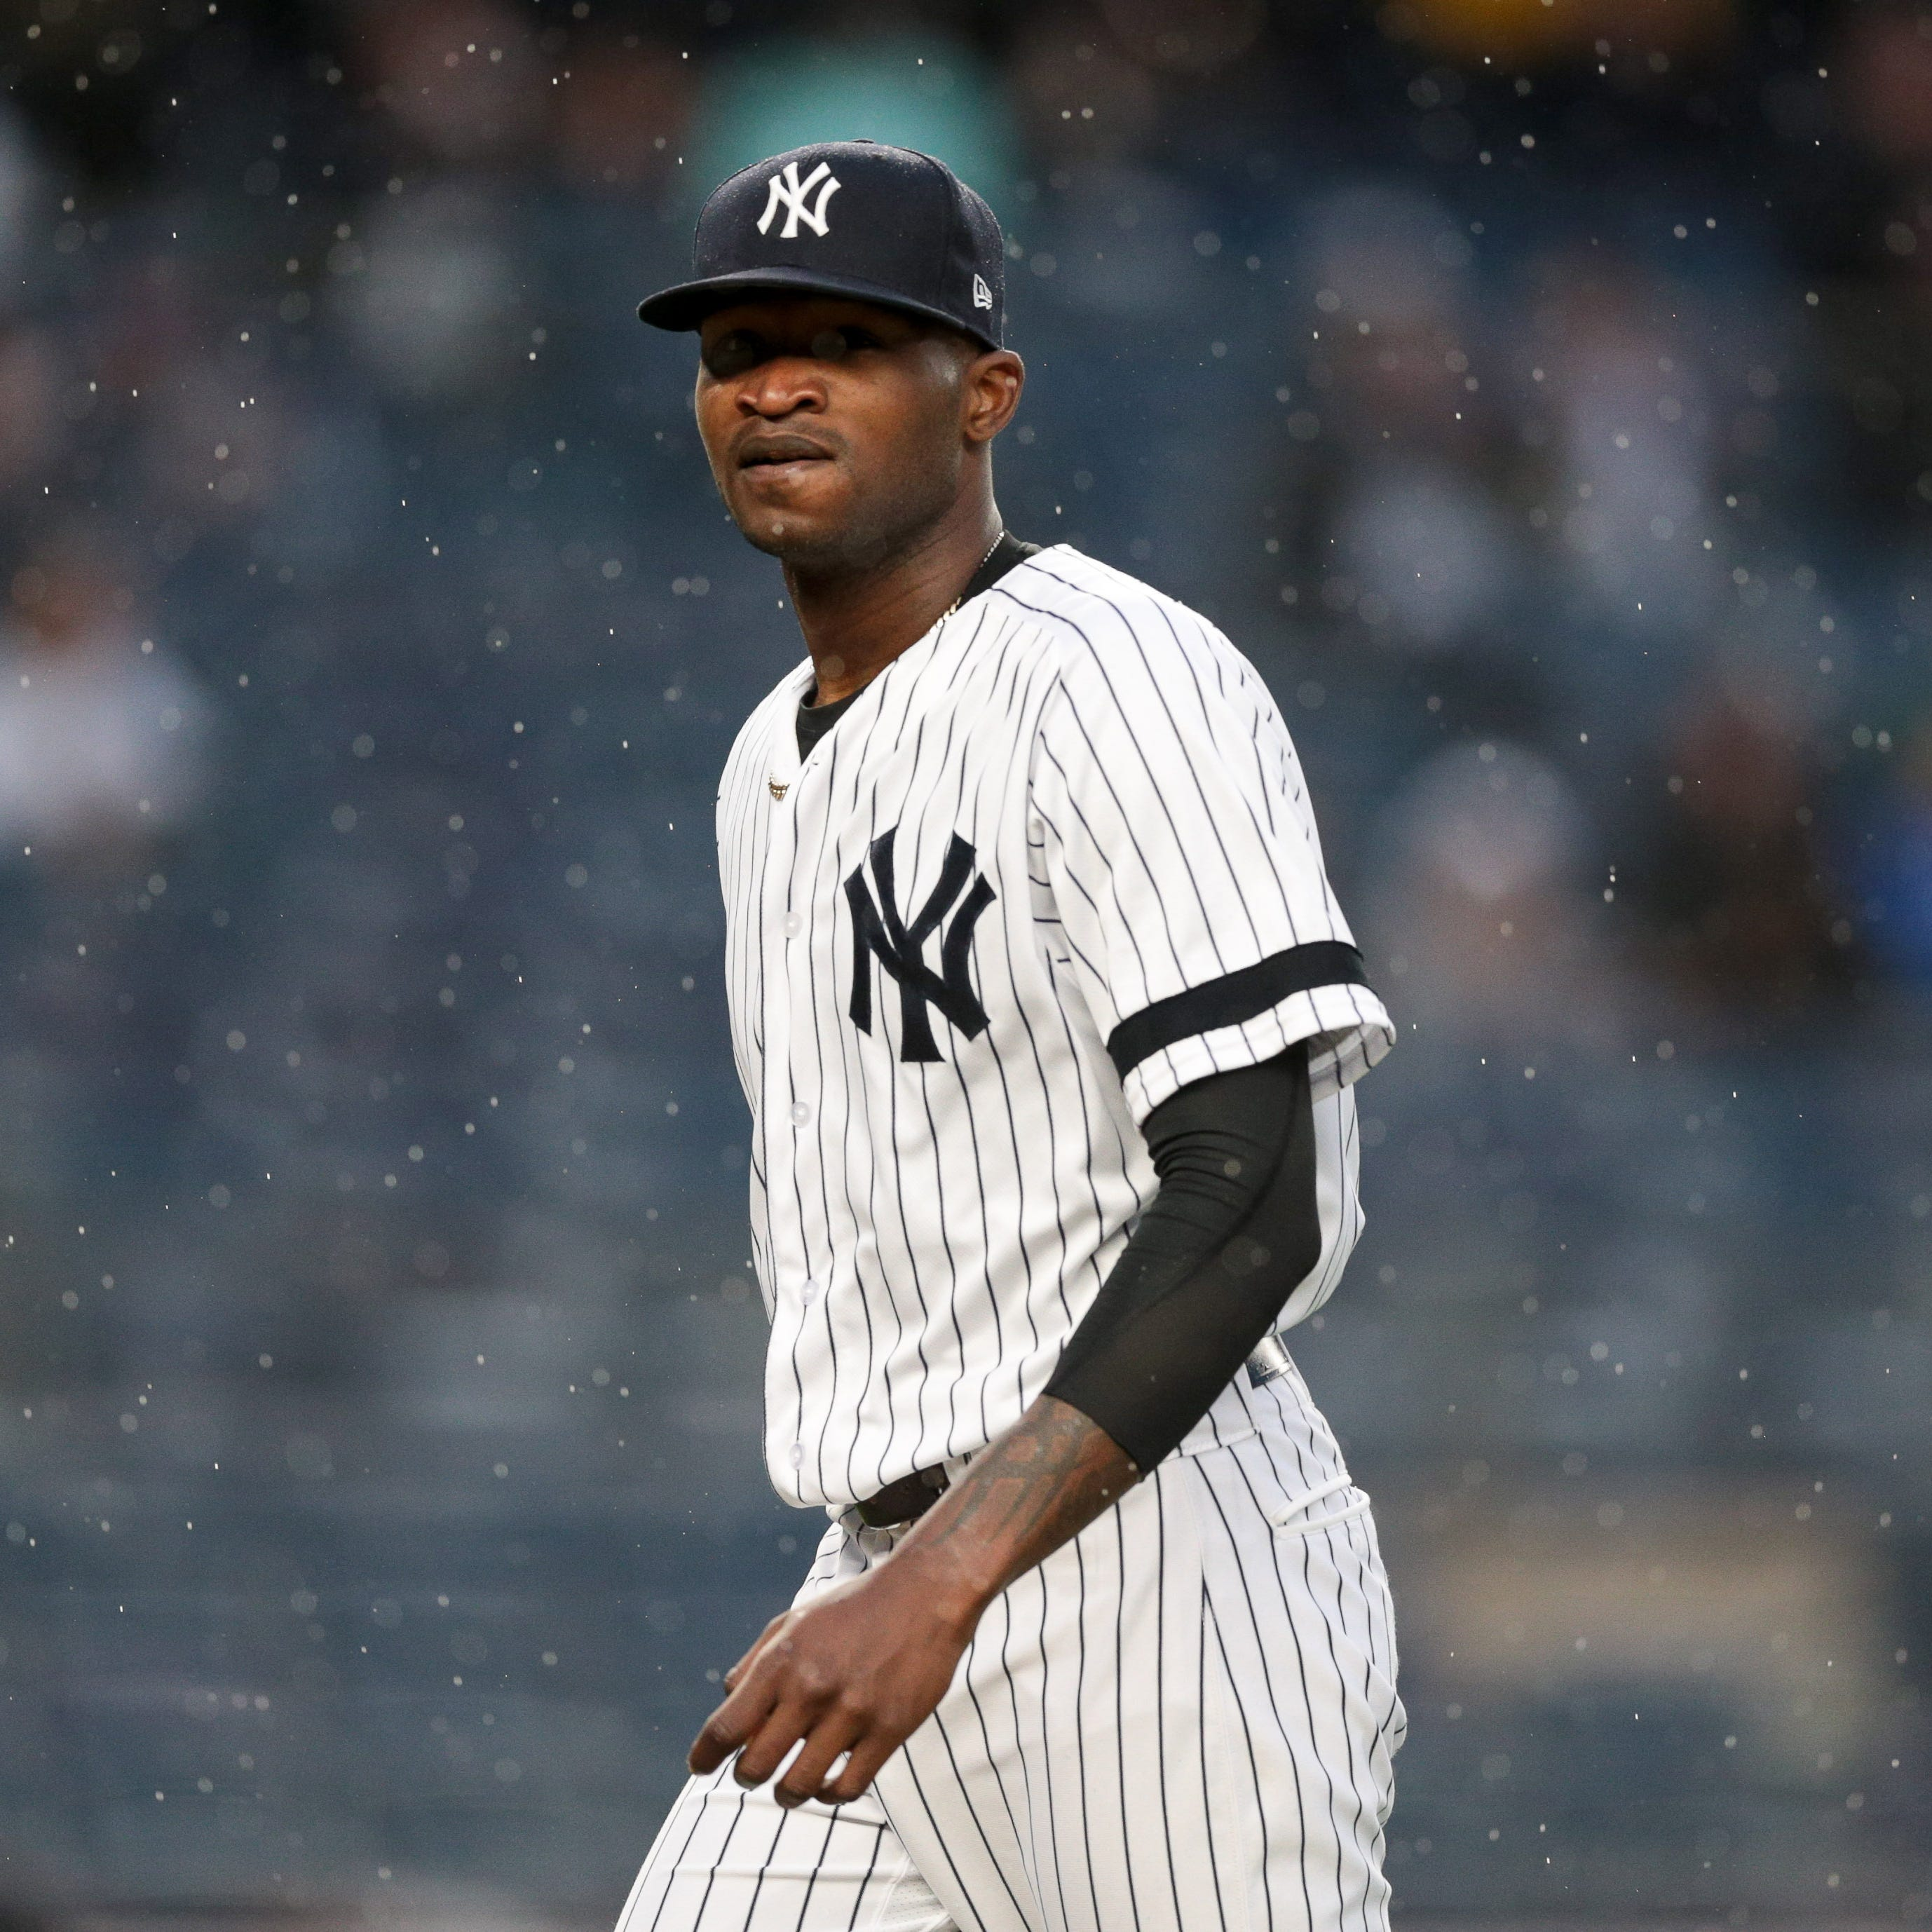 Domingo German powers New York Yankees past first-place Twins